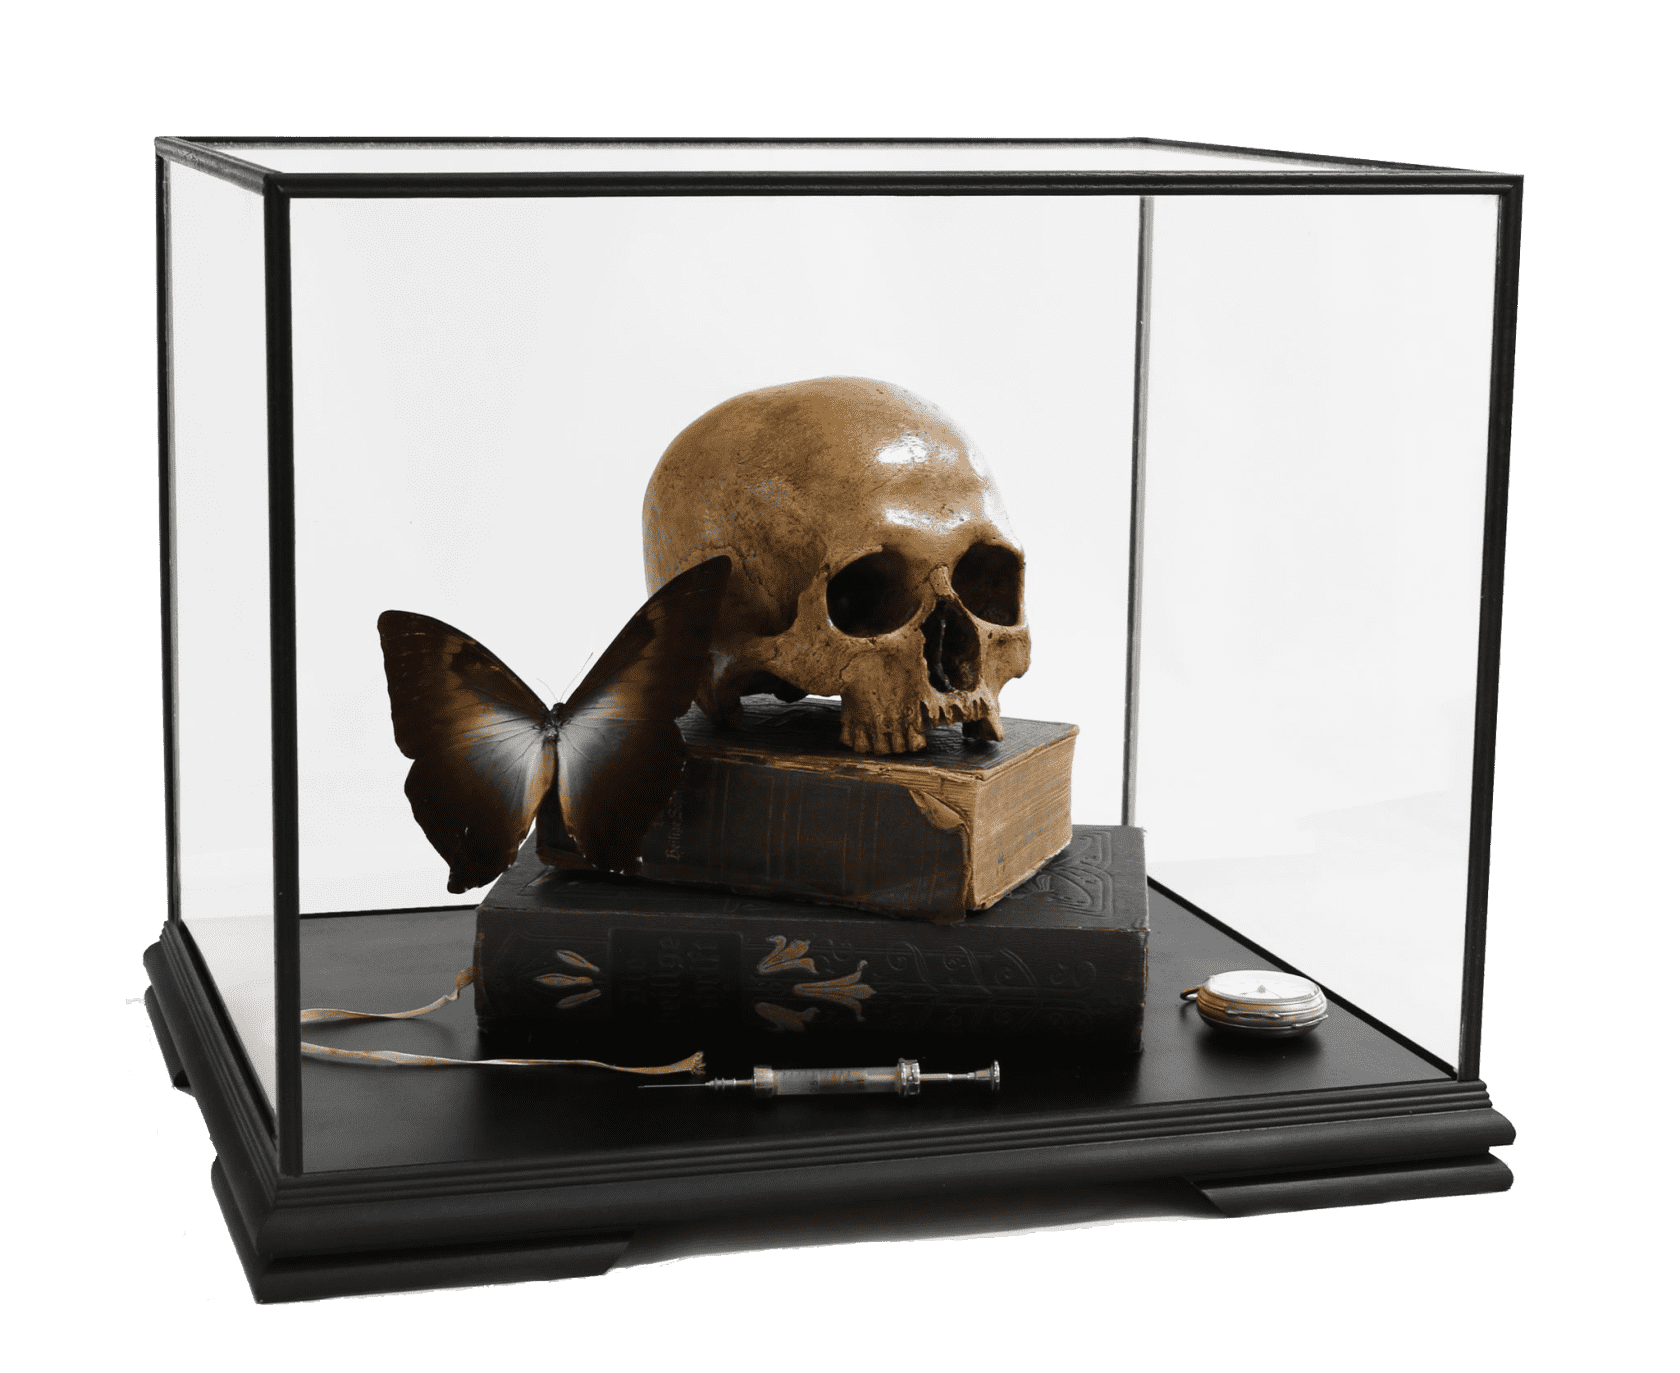 the connor brothers Memento Mori with Heilige Schrift and Morpho Telemachus Cast human skull, 19th Century books, antique syringe and...